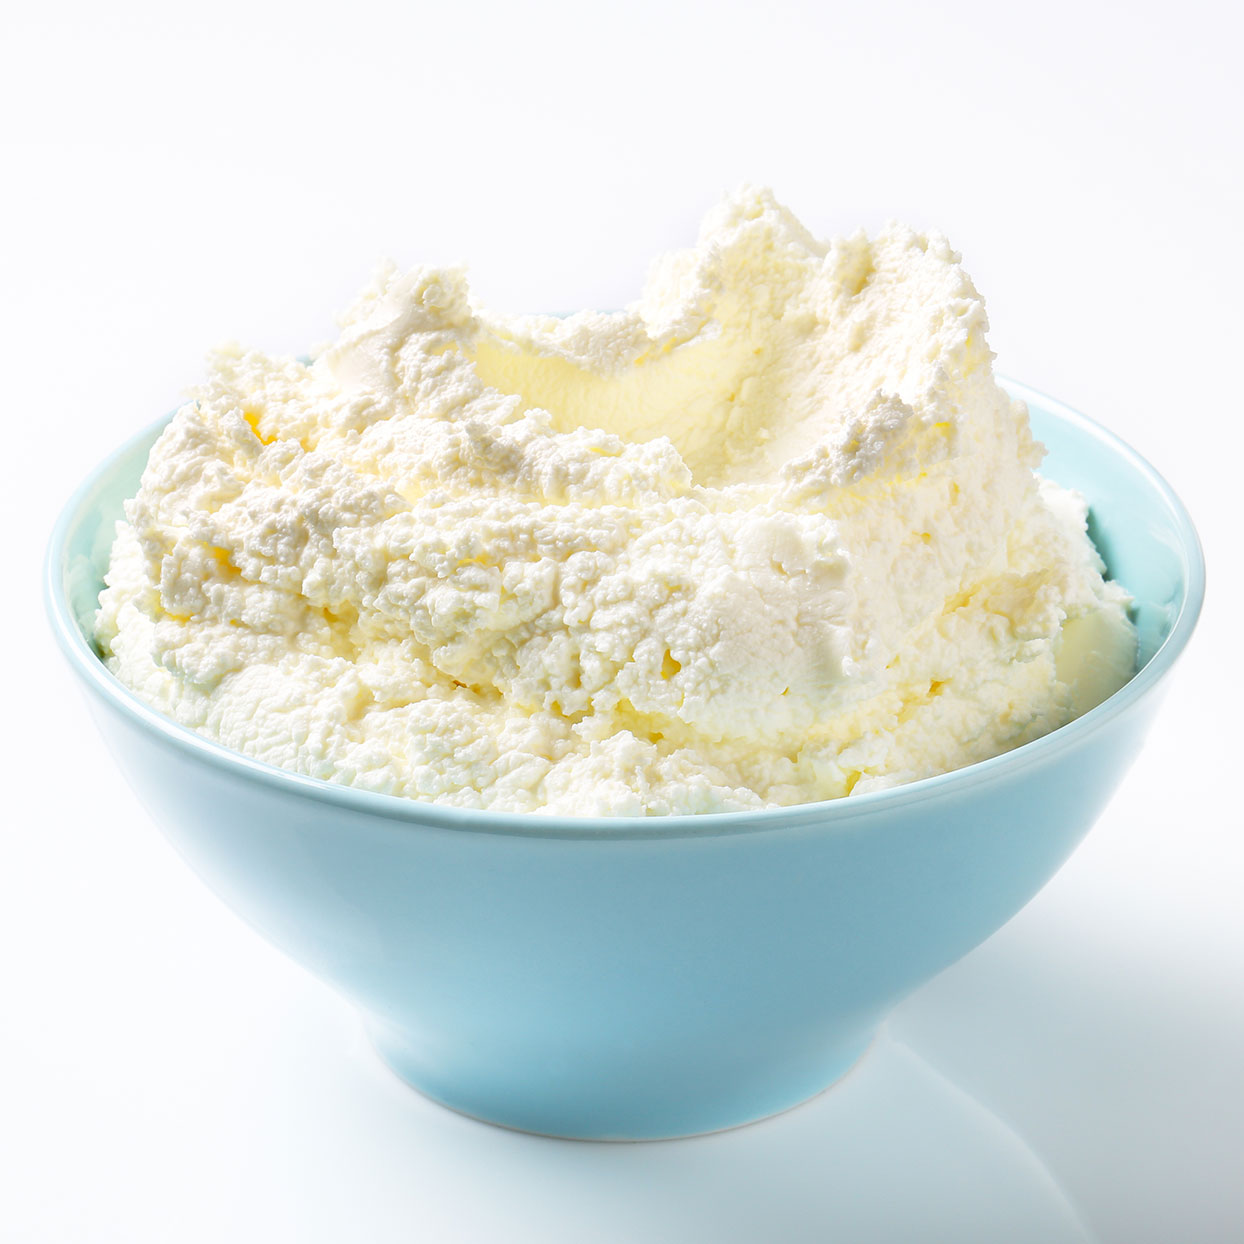 a blue bowl with cream cheese